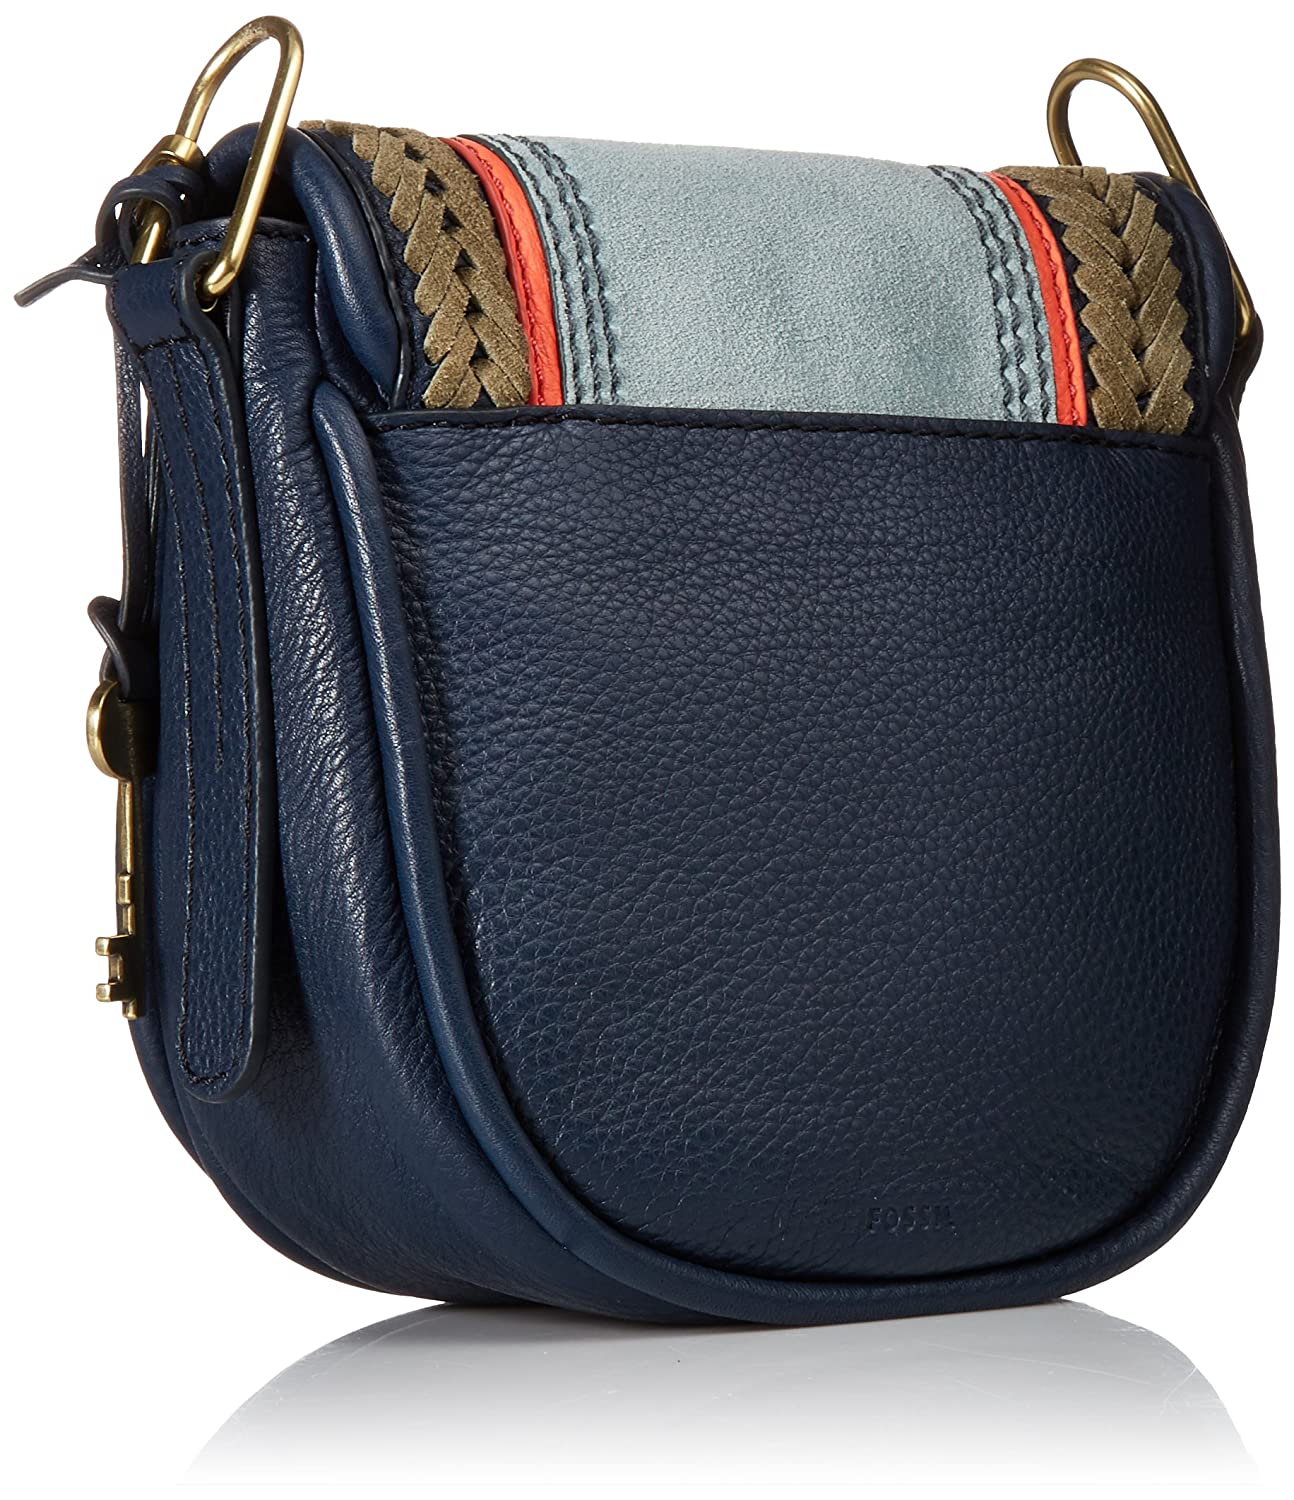 Fossil Zb7284490 Navy Multi Stripe Handbags Kendall Crossbody